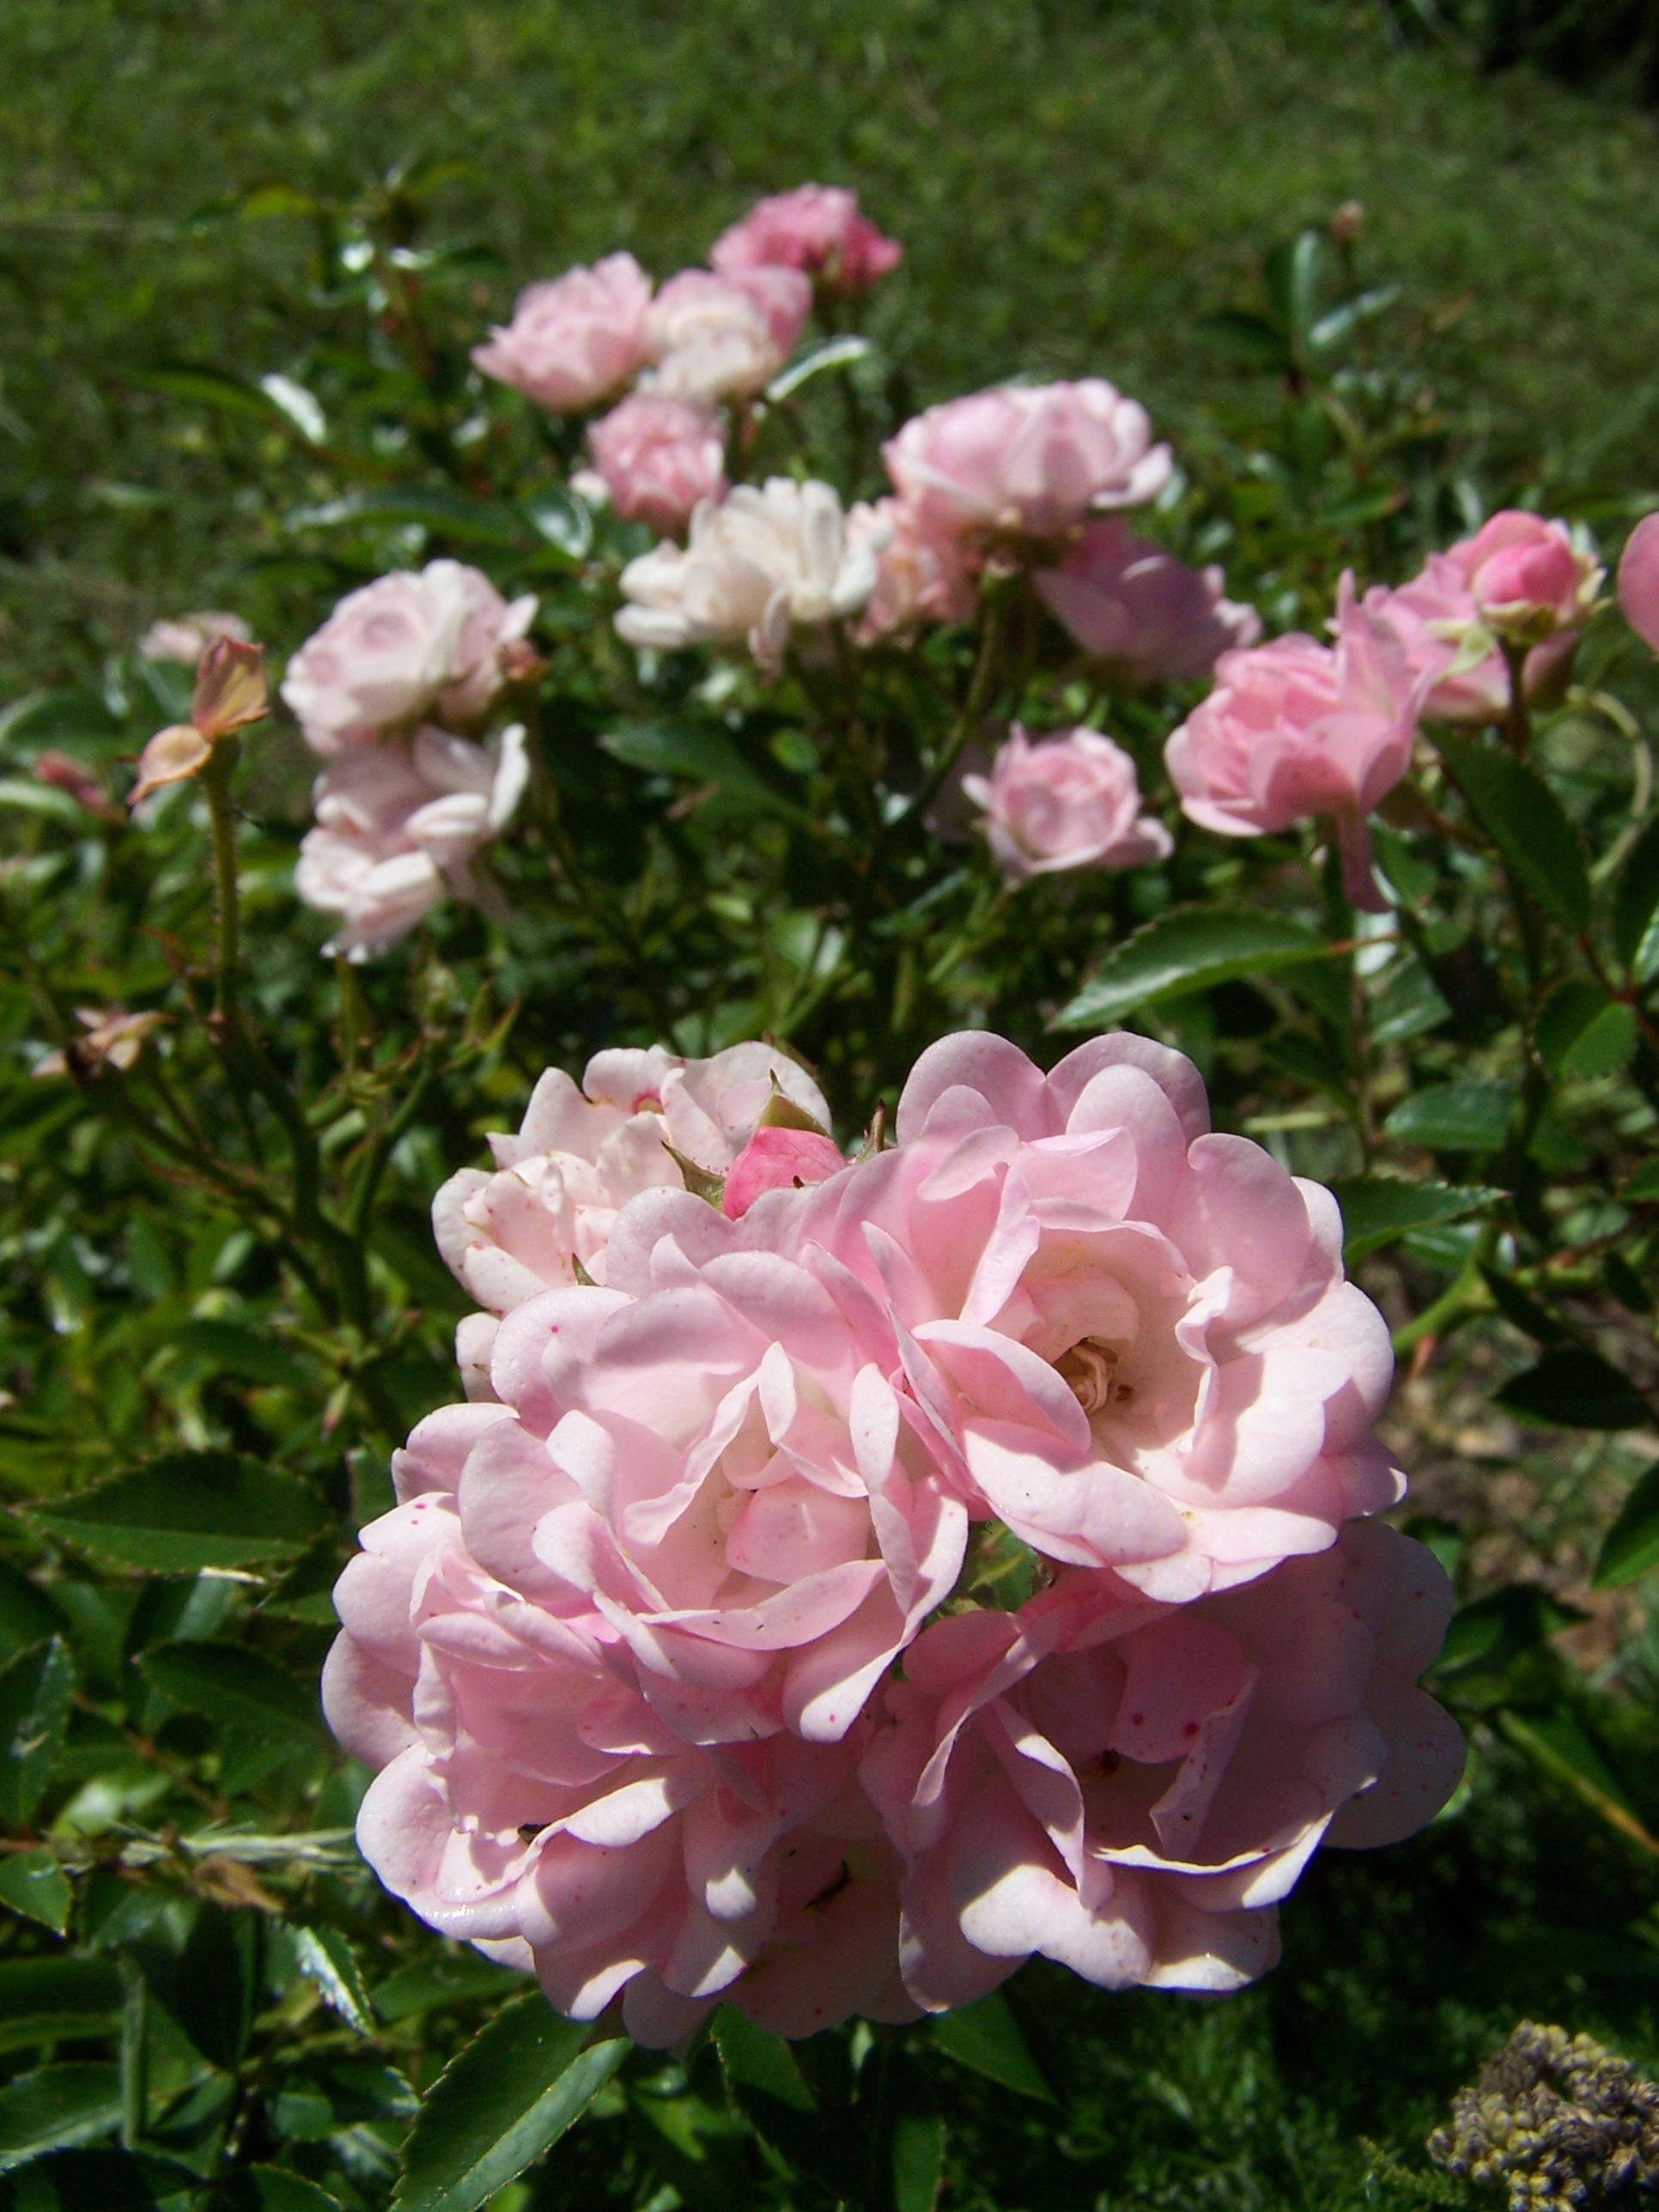 Fairy rose - sweet and beautiful